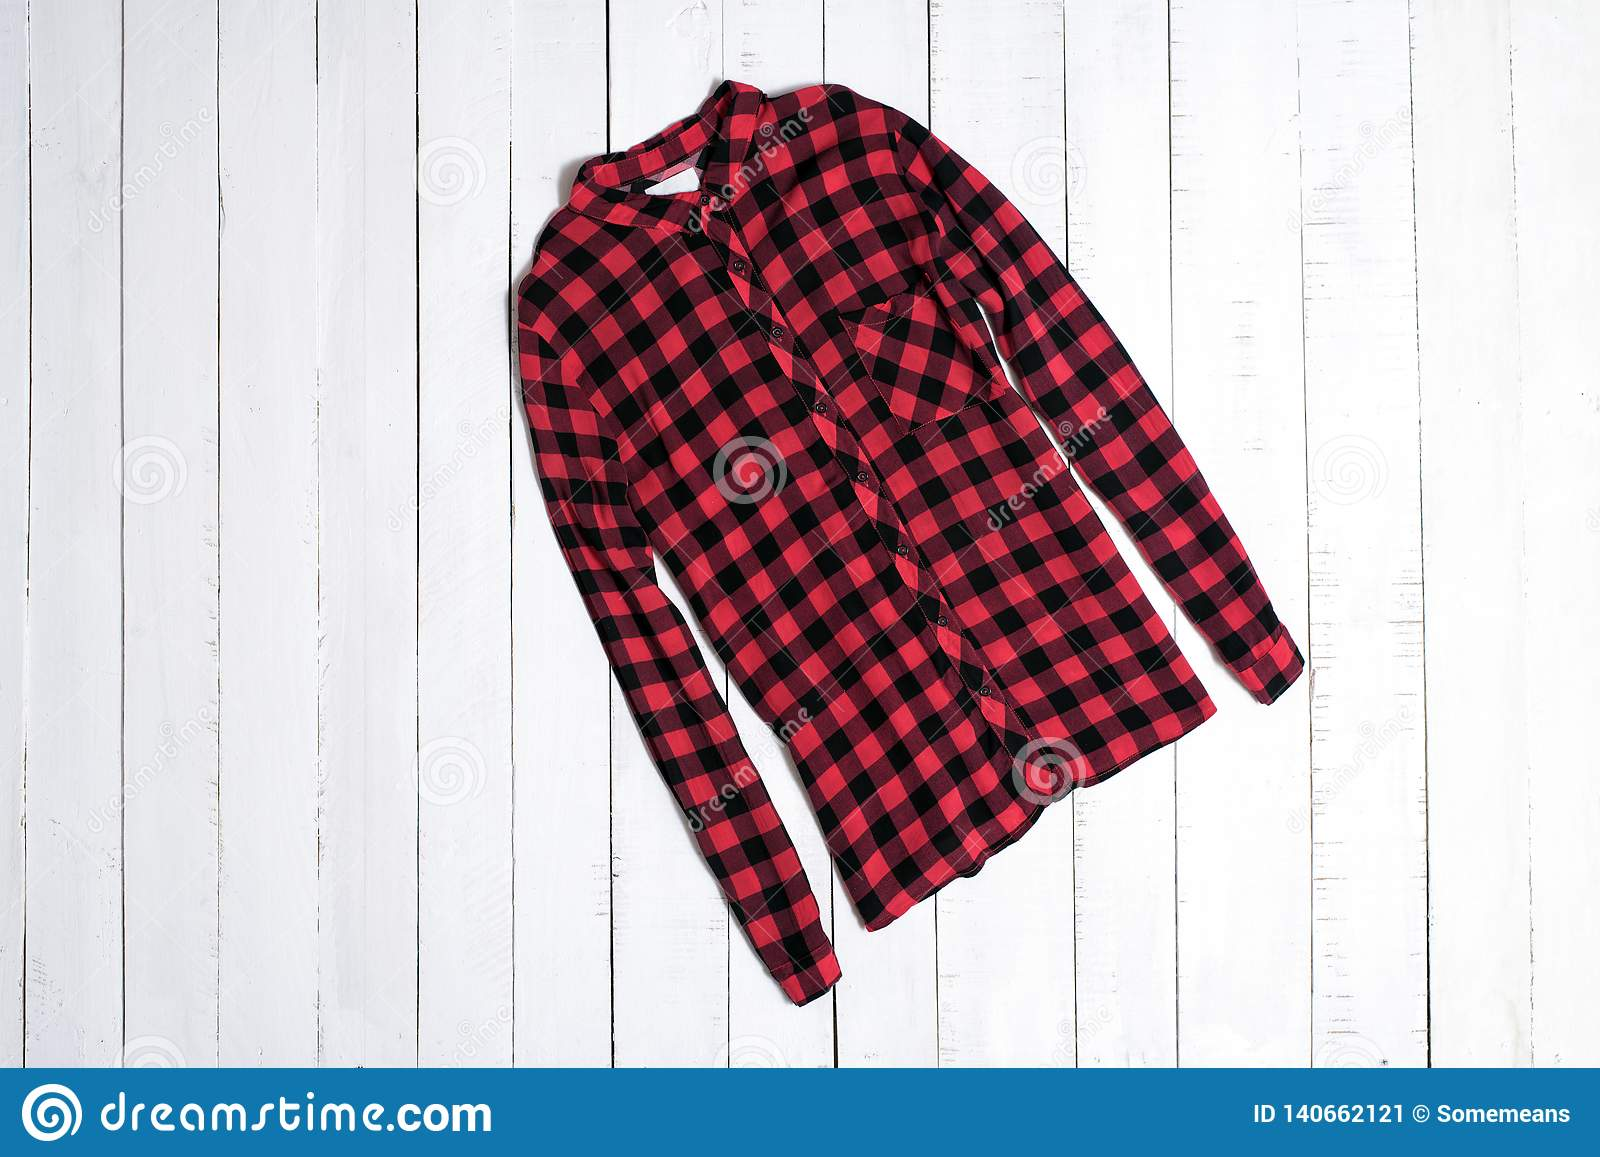 Fashion Clothes  Red Checkered Shirt On White Wooden Floor Planks